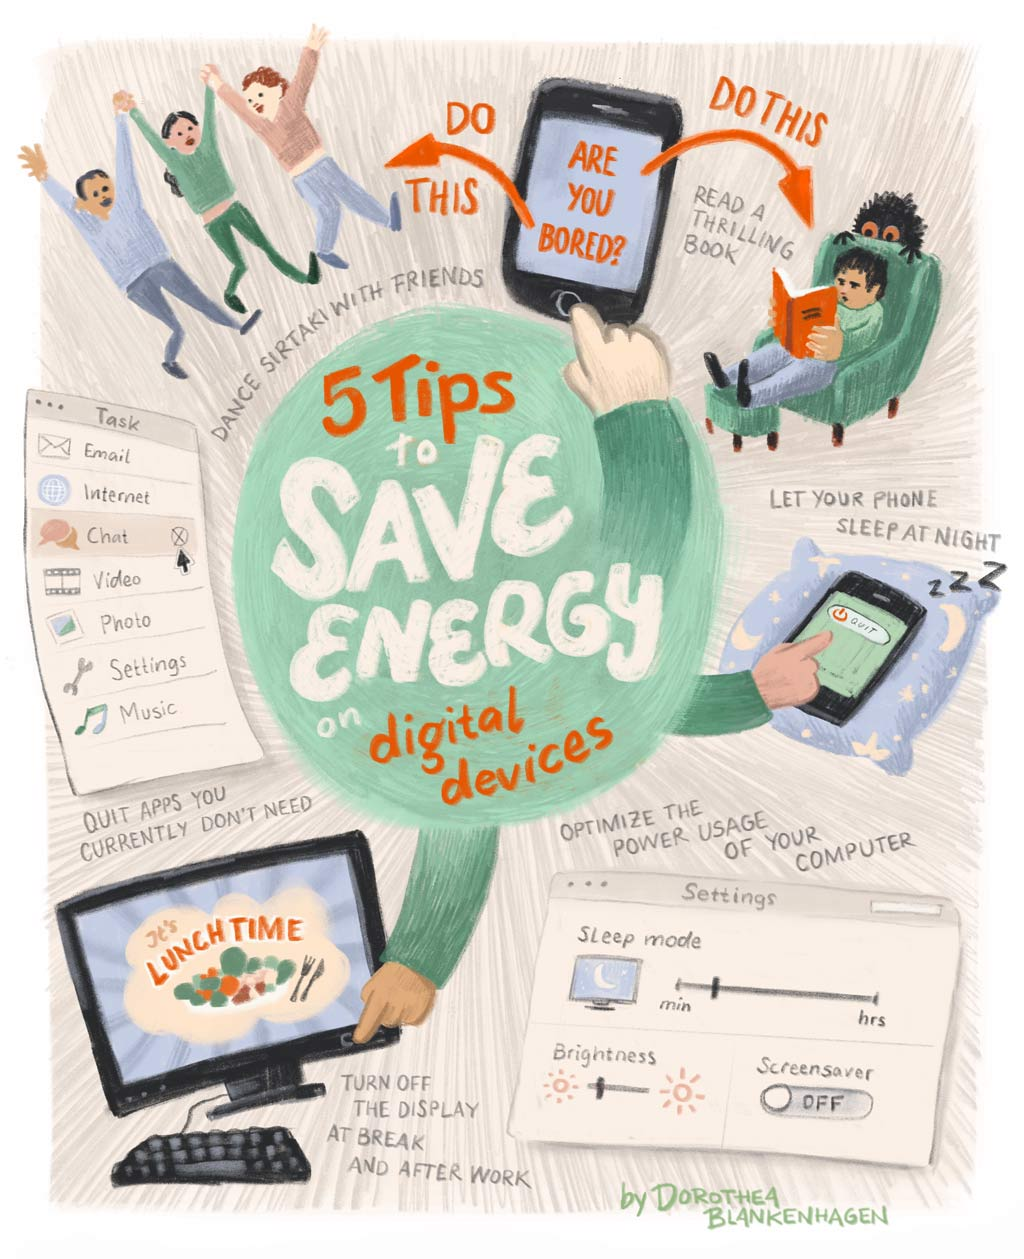 save-energy-switchoff-turnoff-quit-digitaldevices-climateaction-sustainability-editorial-illustration-dorothea-blankenhagen-berlin.jpg